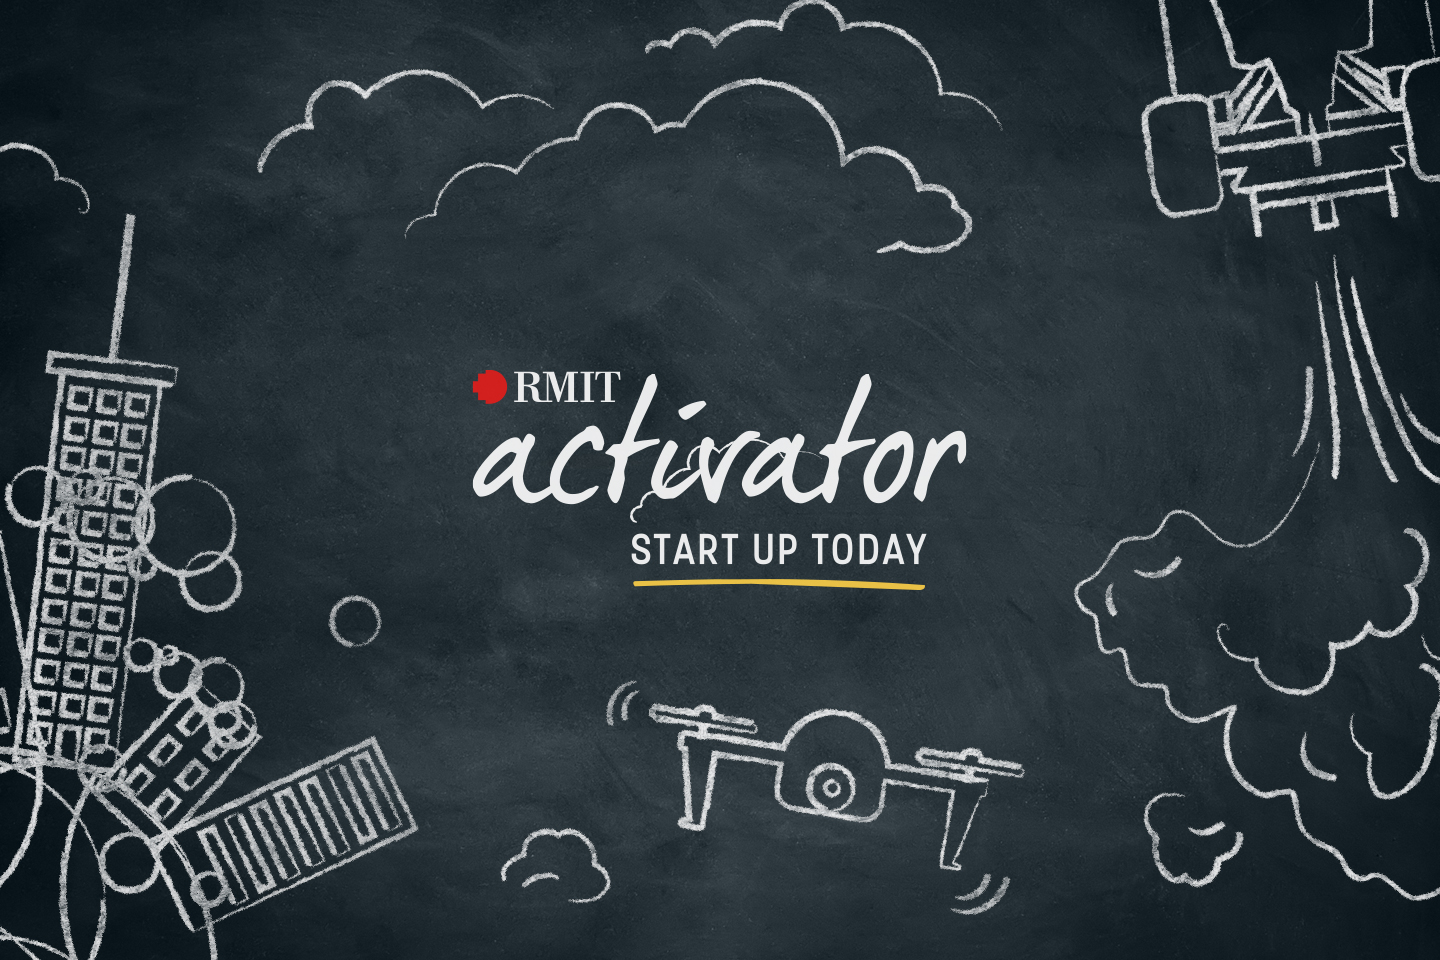 Blackboard with chalk sketches and the text: RMIT Activator - START UP TODAY